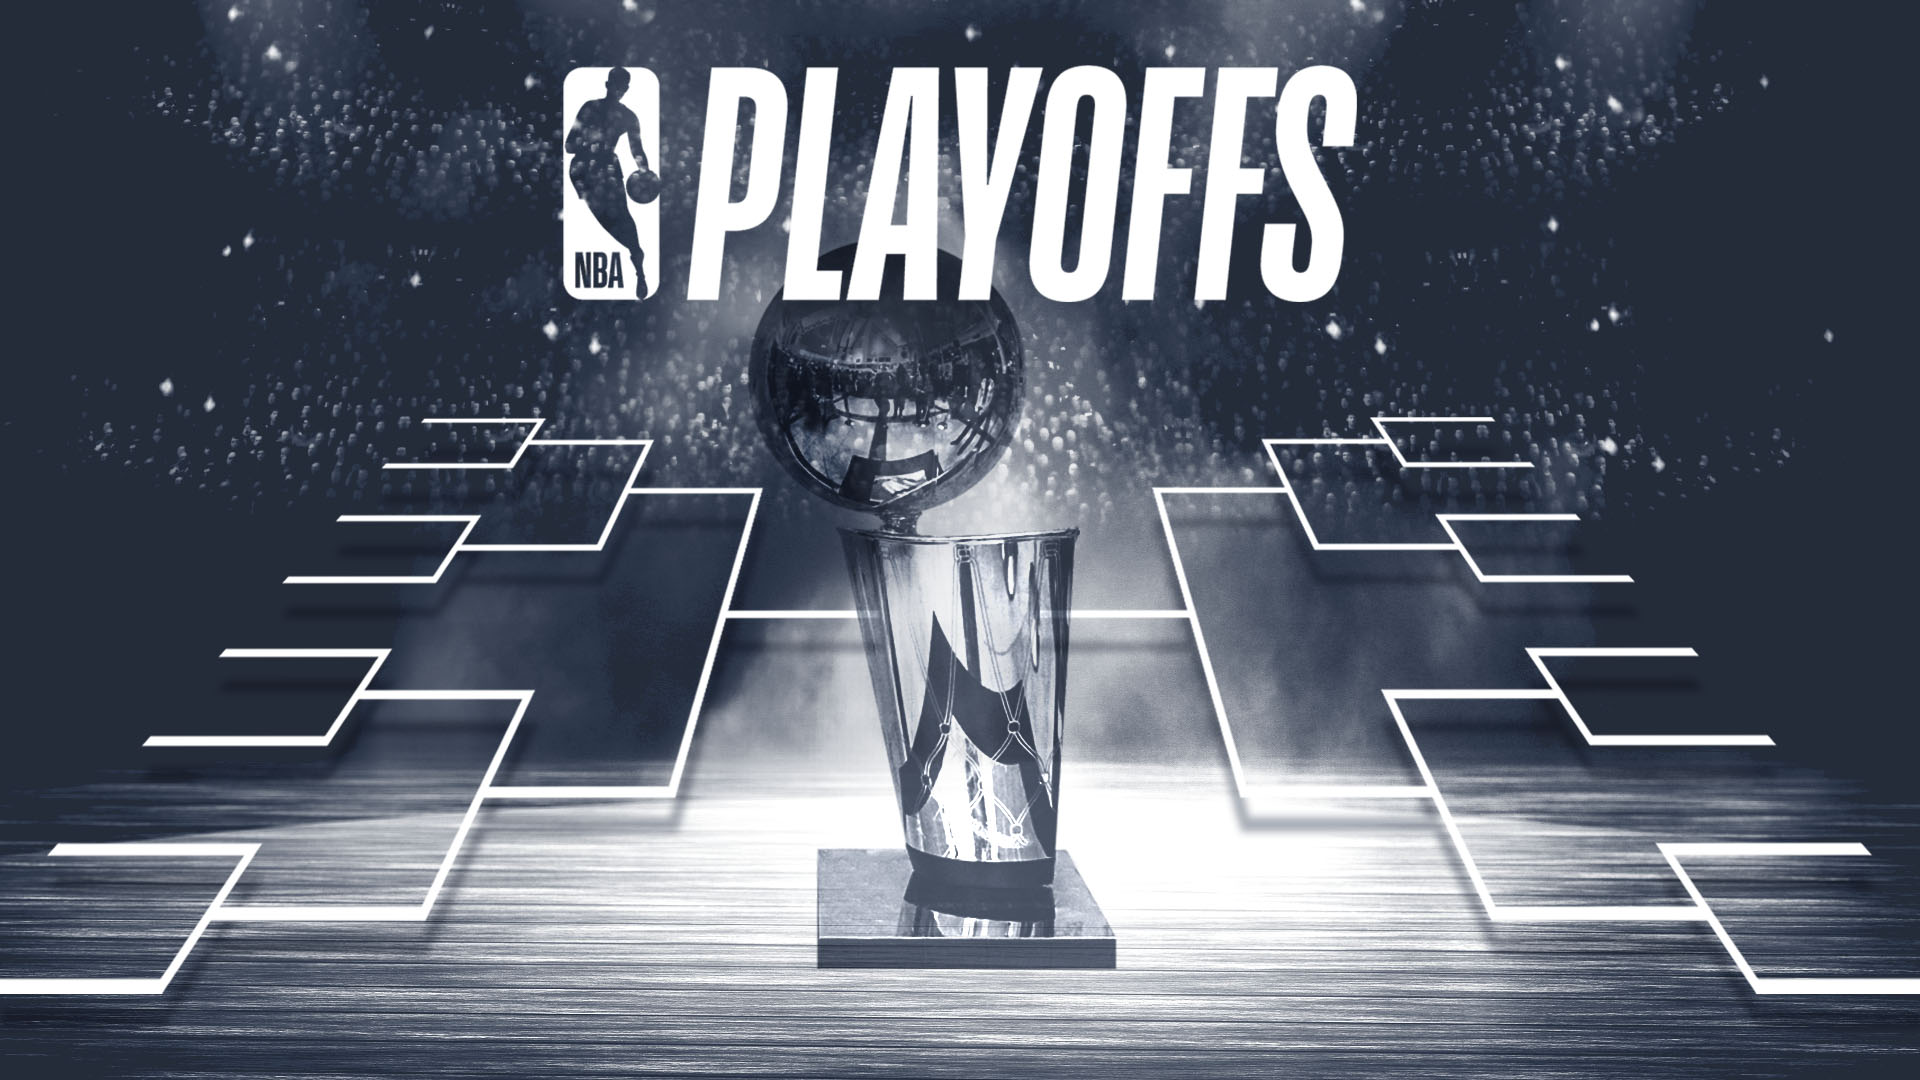 NBA playoffs 2019: Standings, playoff picture, current matchups and seeds | NBA.com